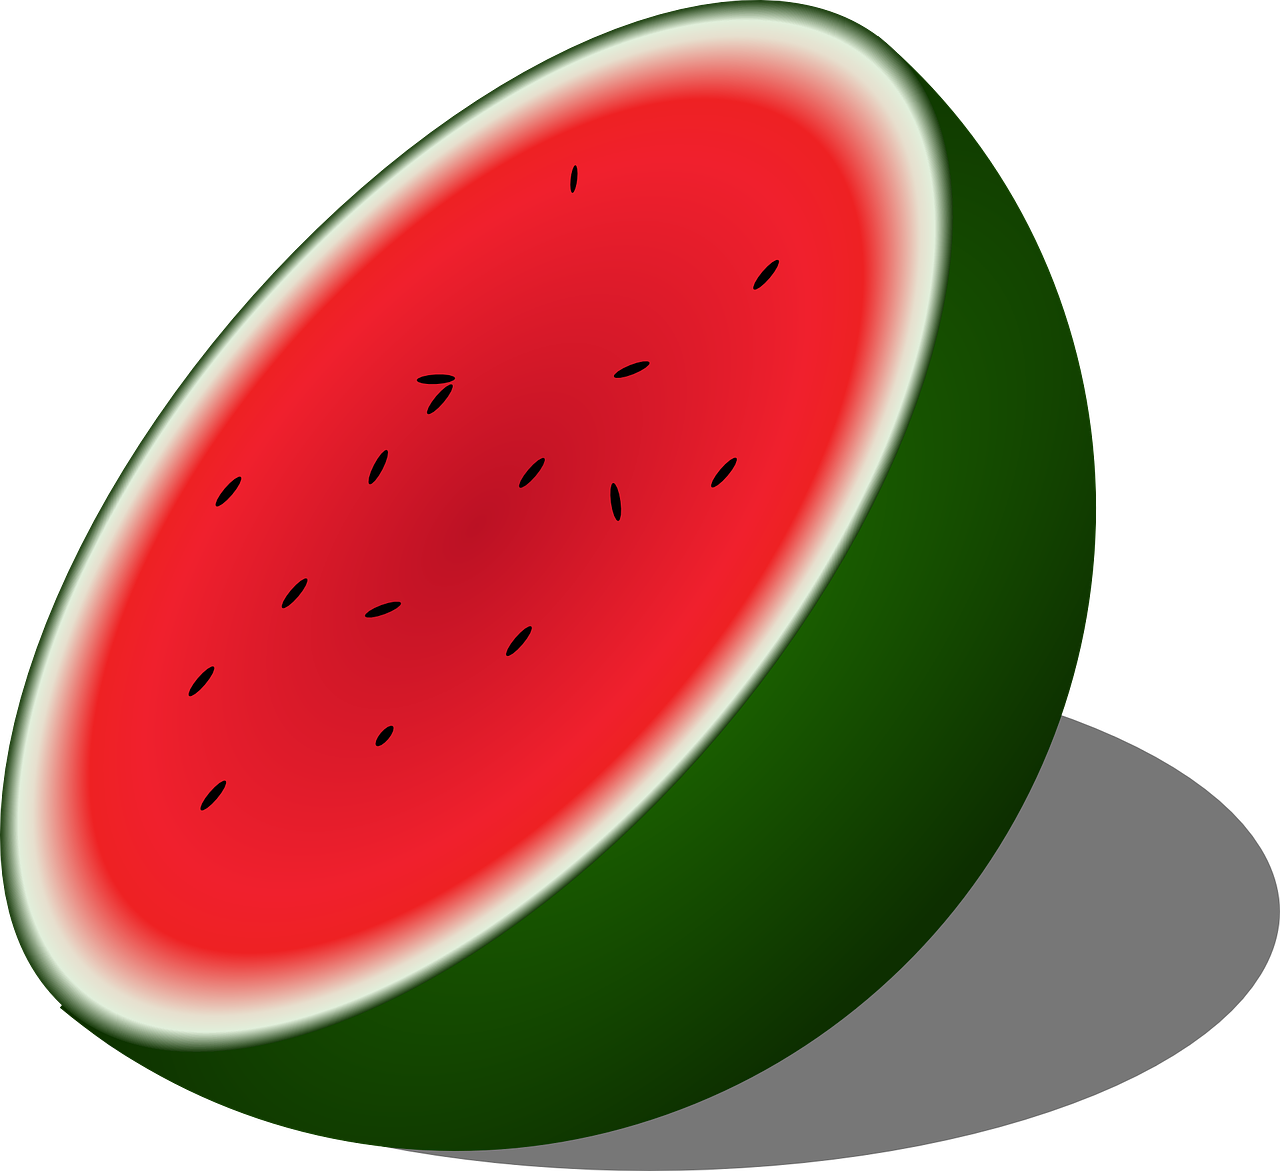 Watermelon stripes png. Melon half seeded fruit